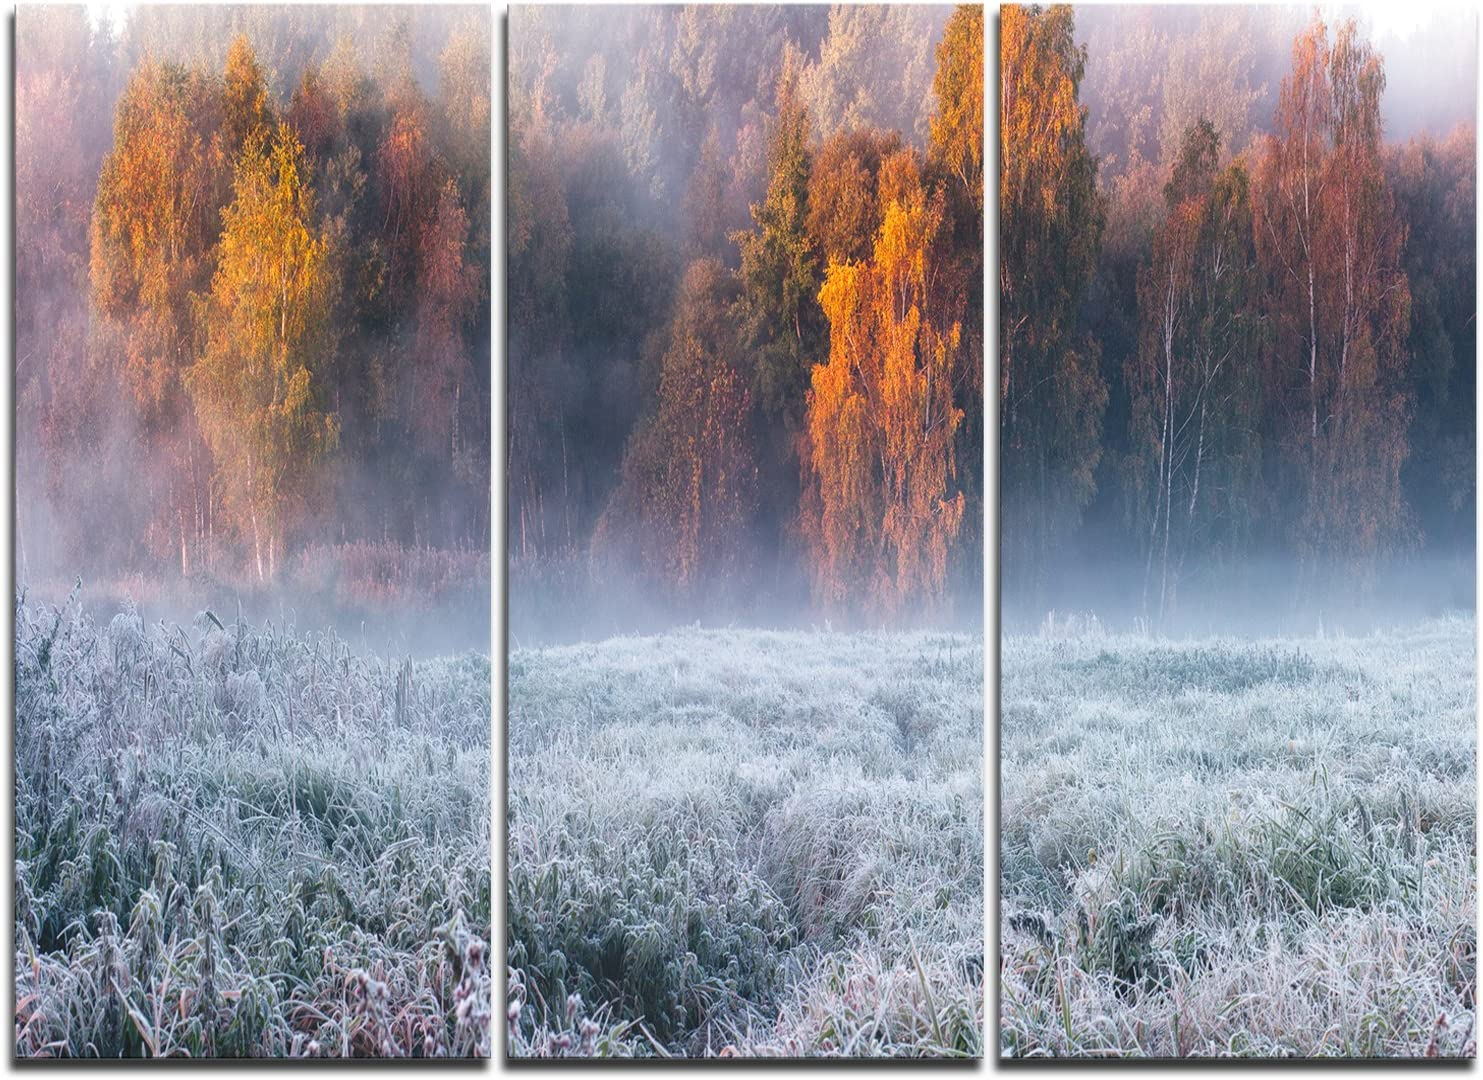 Artdesign Design Art Grey Hoarfrost Design By Winter Landscape Print Wall Artwork 36x28in Multipanel 3 Piece White 36x28 3 Panels Amazon Co Uk Kitchen Home